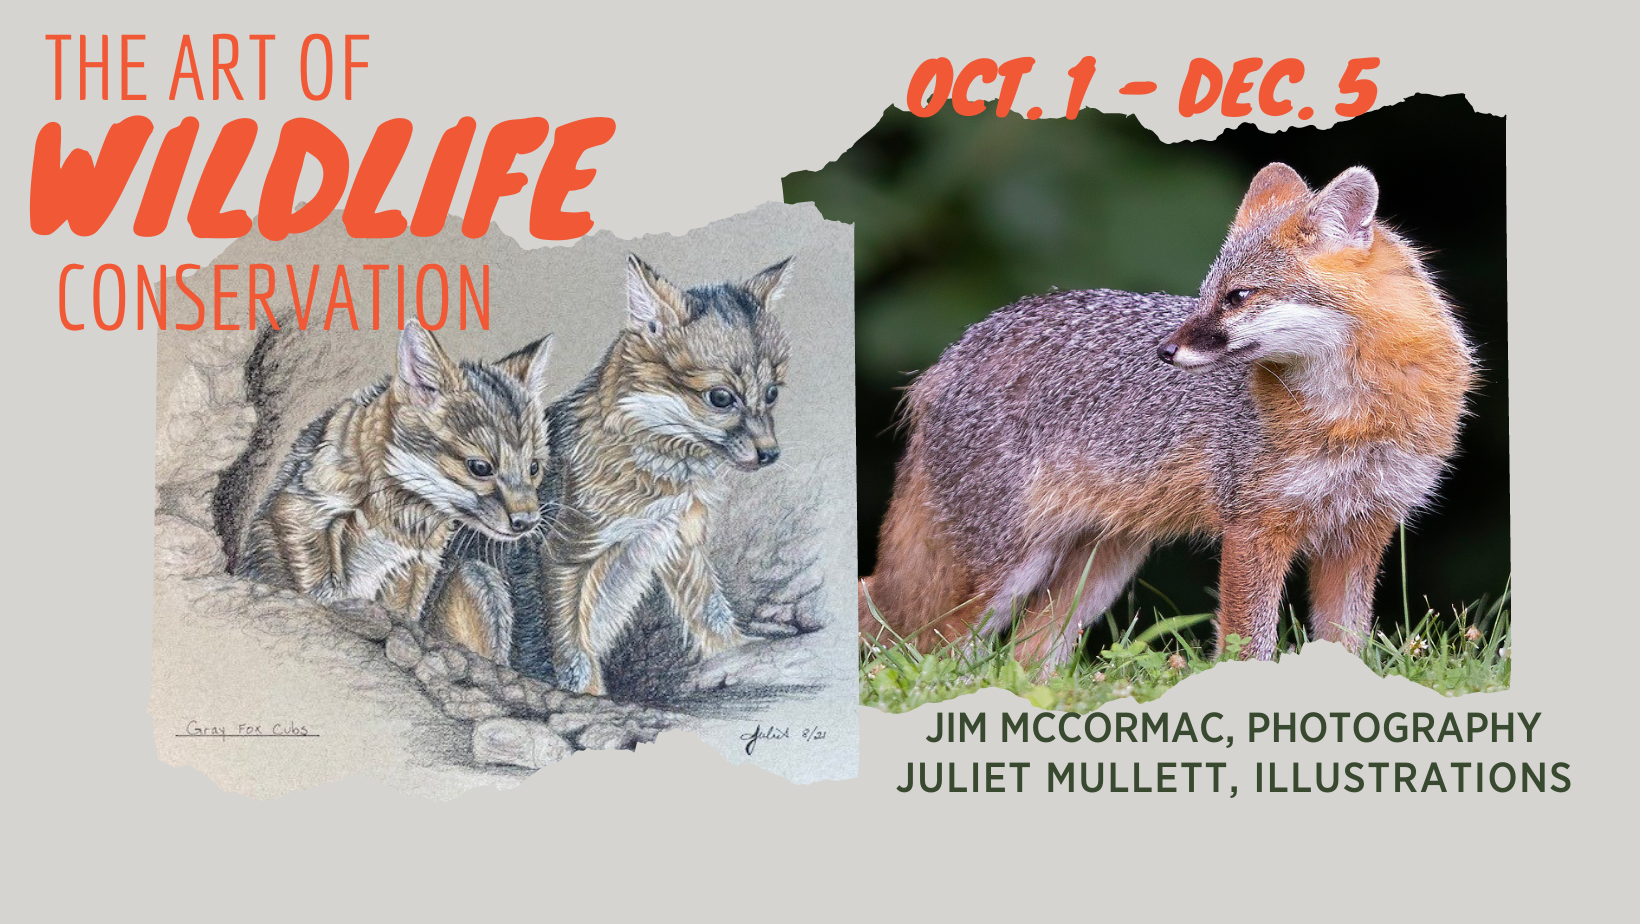 The Art of Wildlife Conservation, Jim McCormac and Juliet Mullett